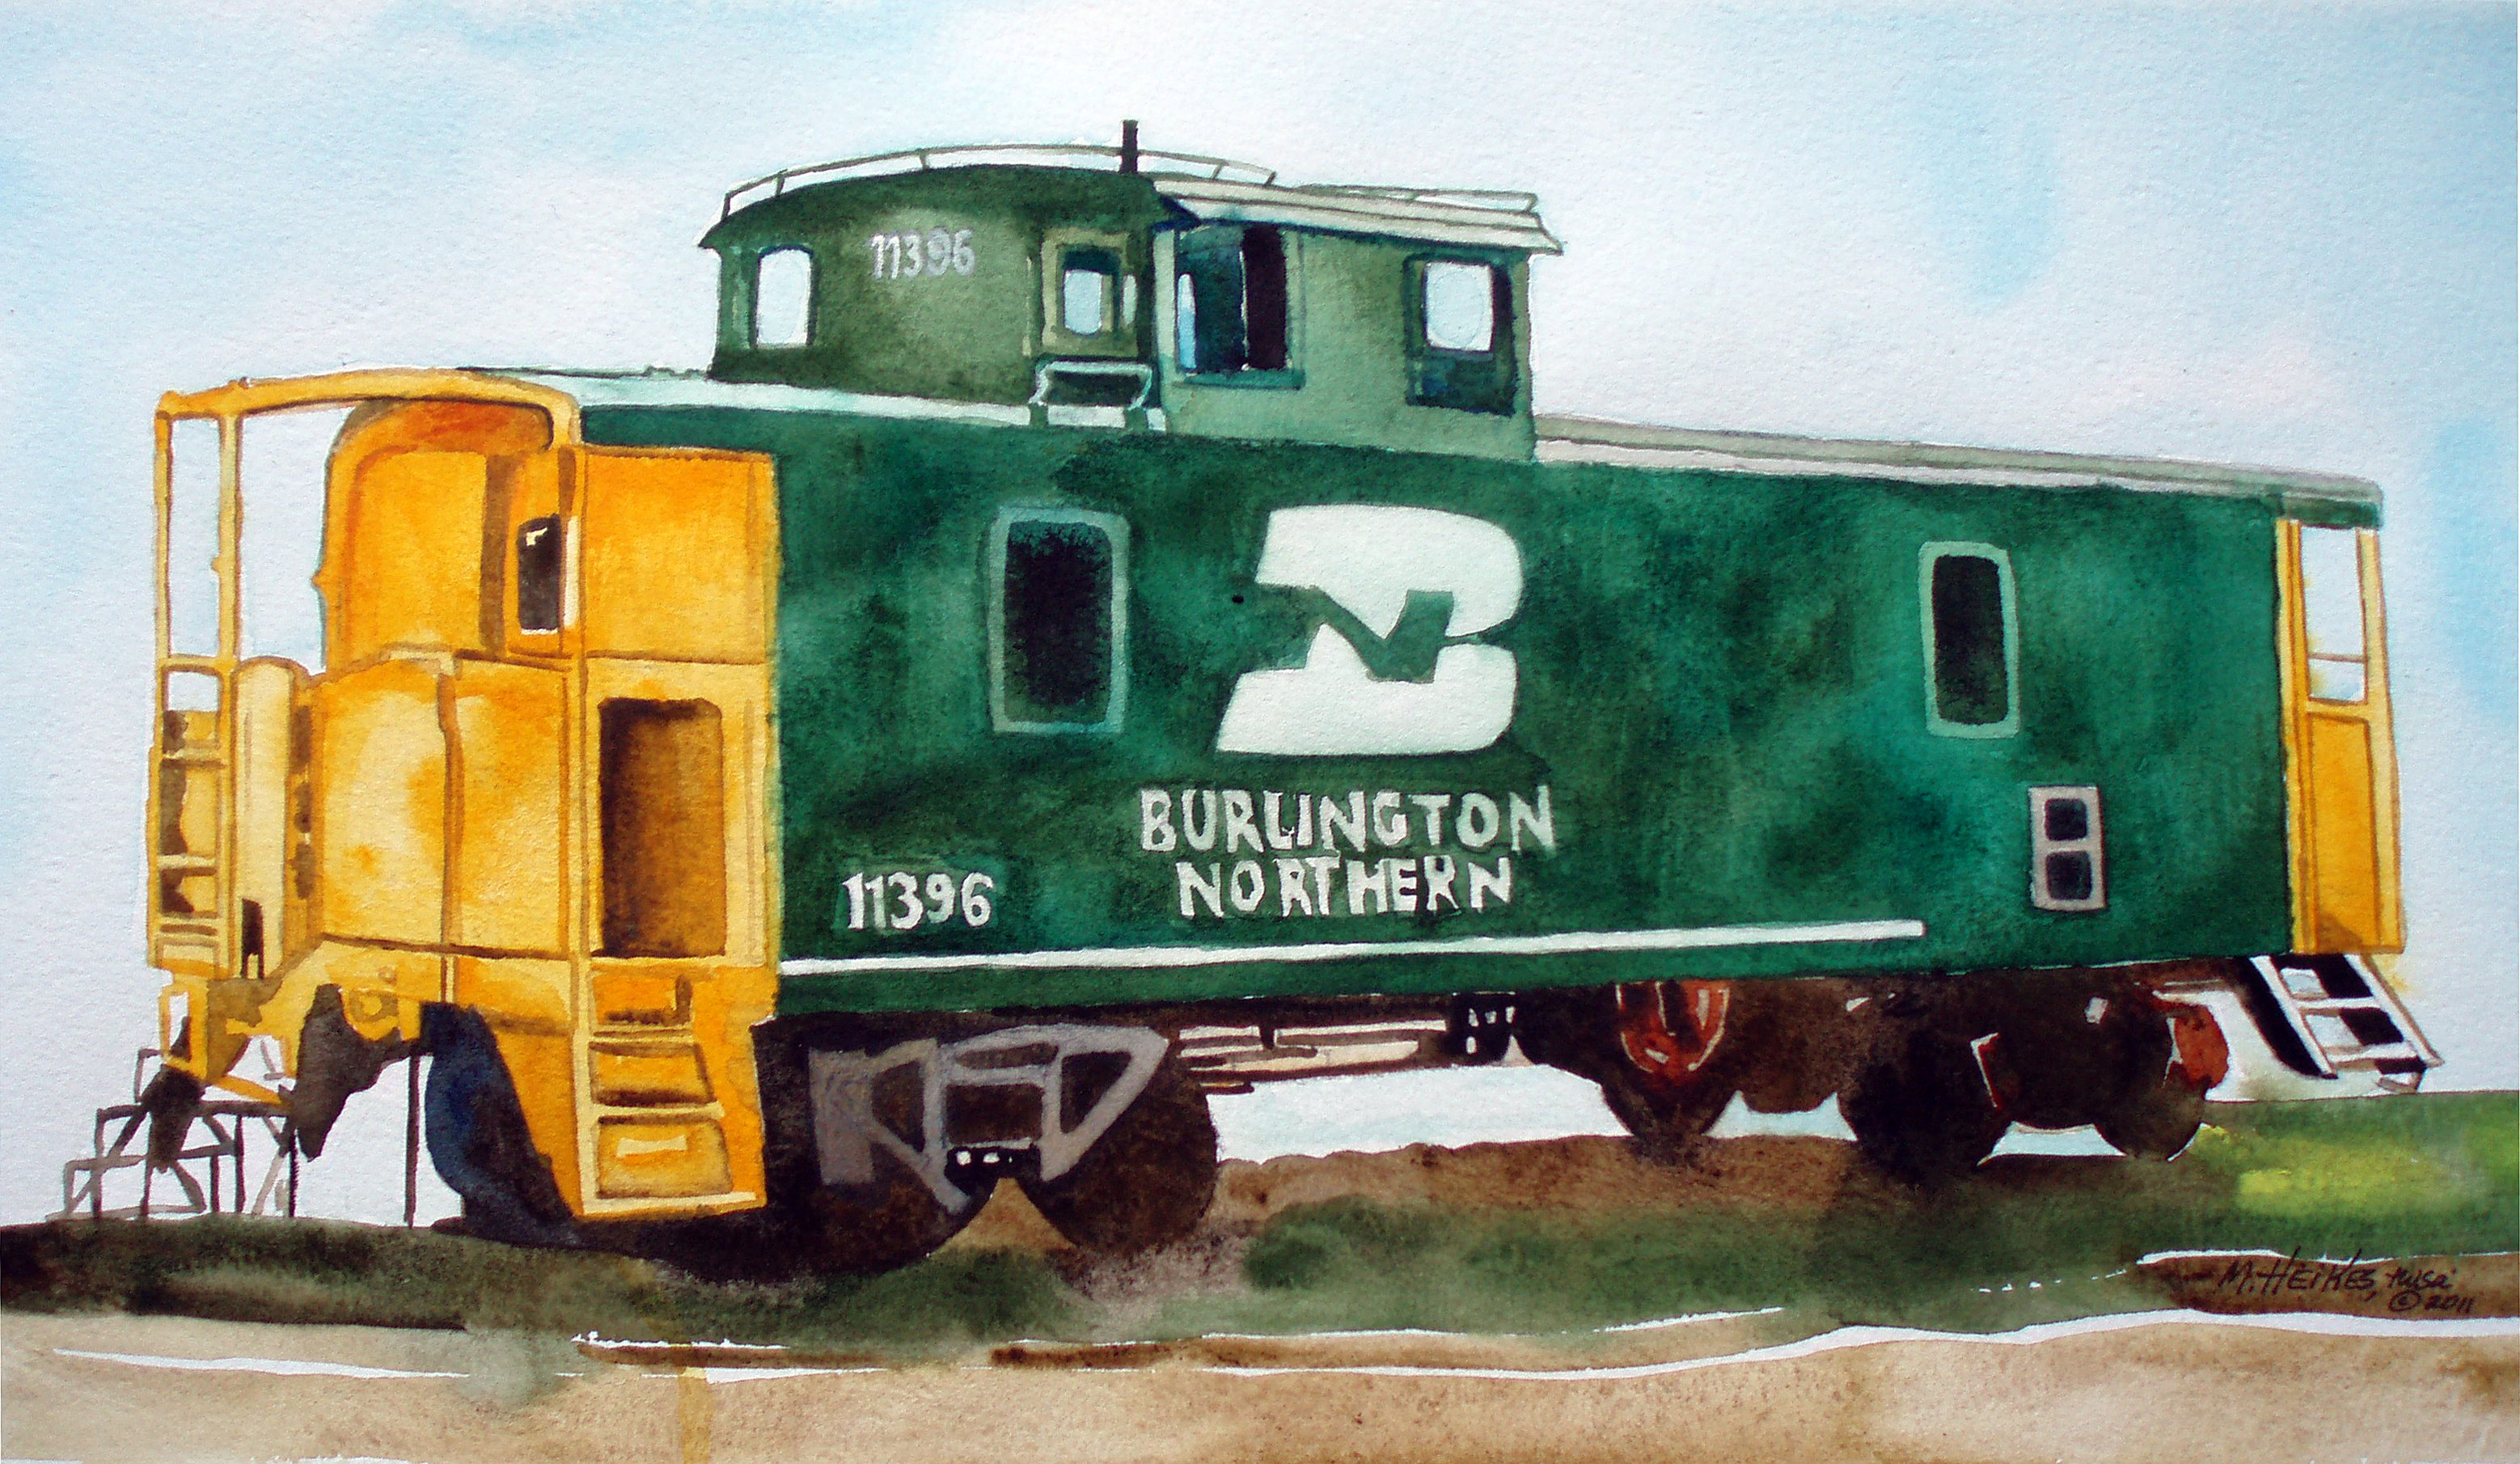 Burlington Northern 11396